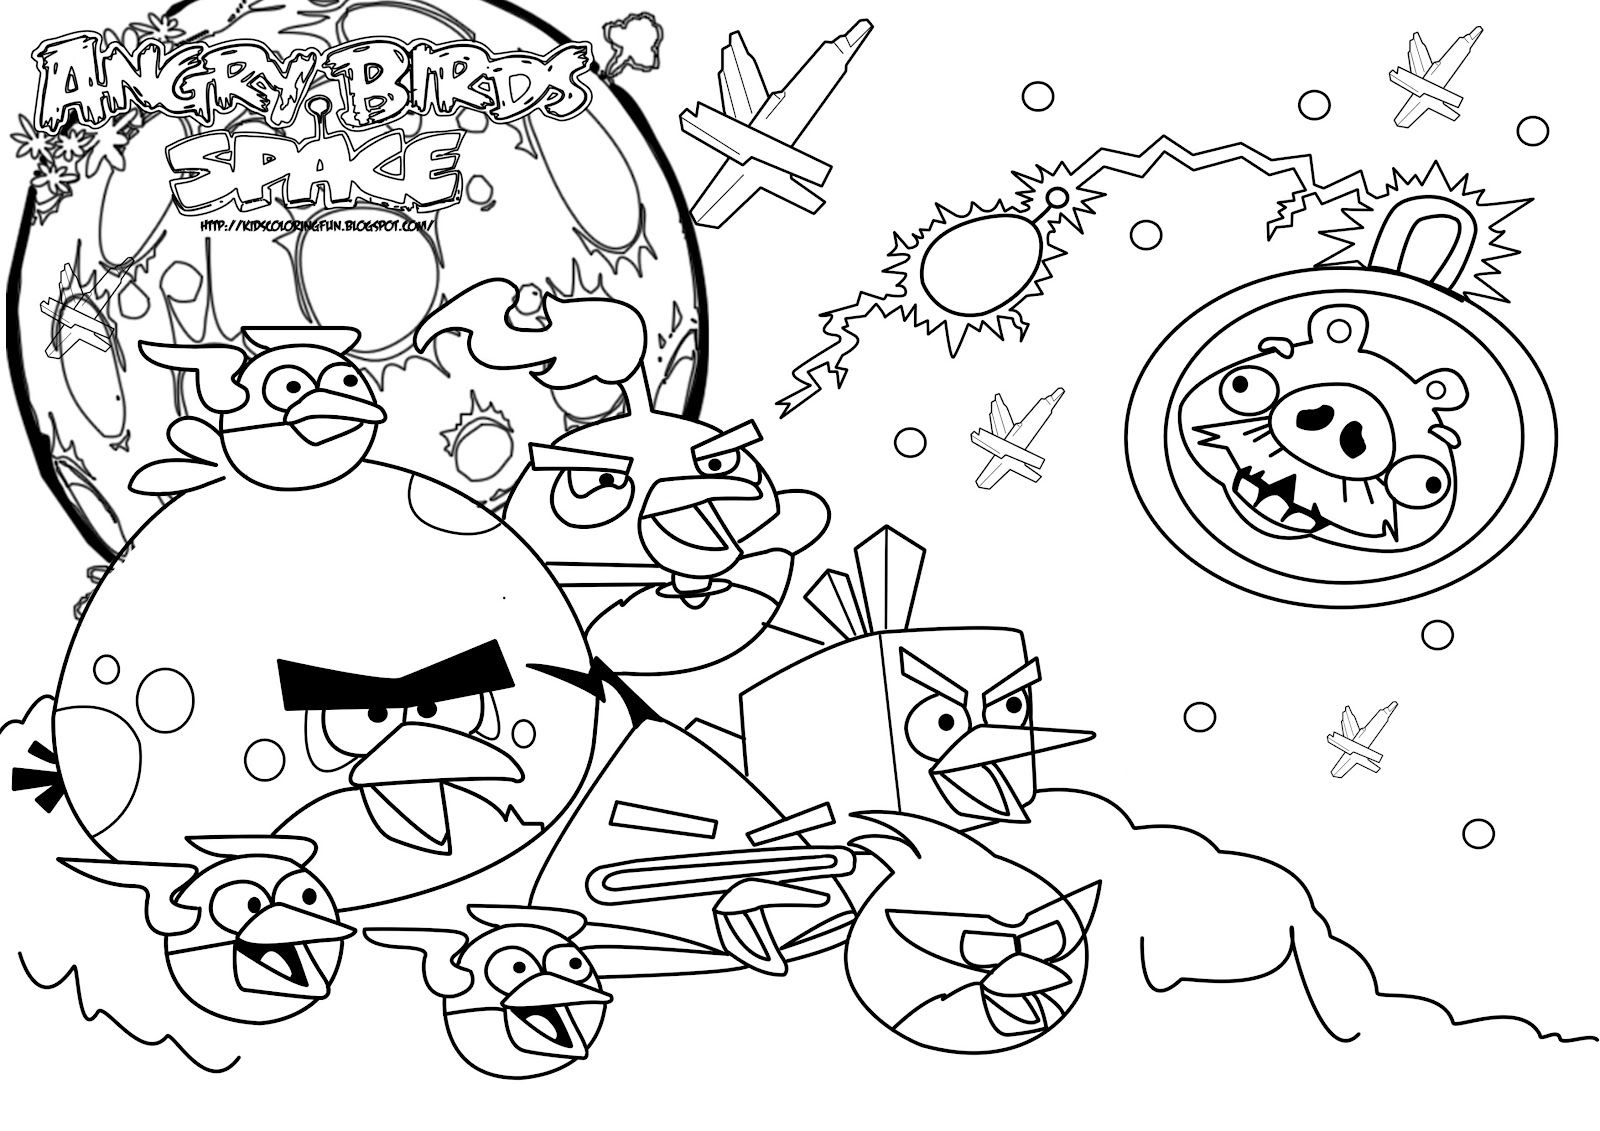 Angry birds colouring pages,angry bird coloring pages - Prints and ...